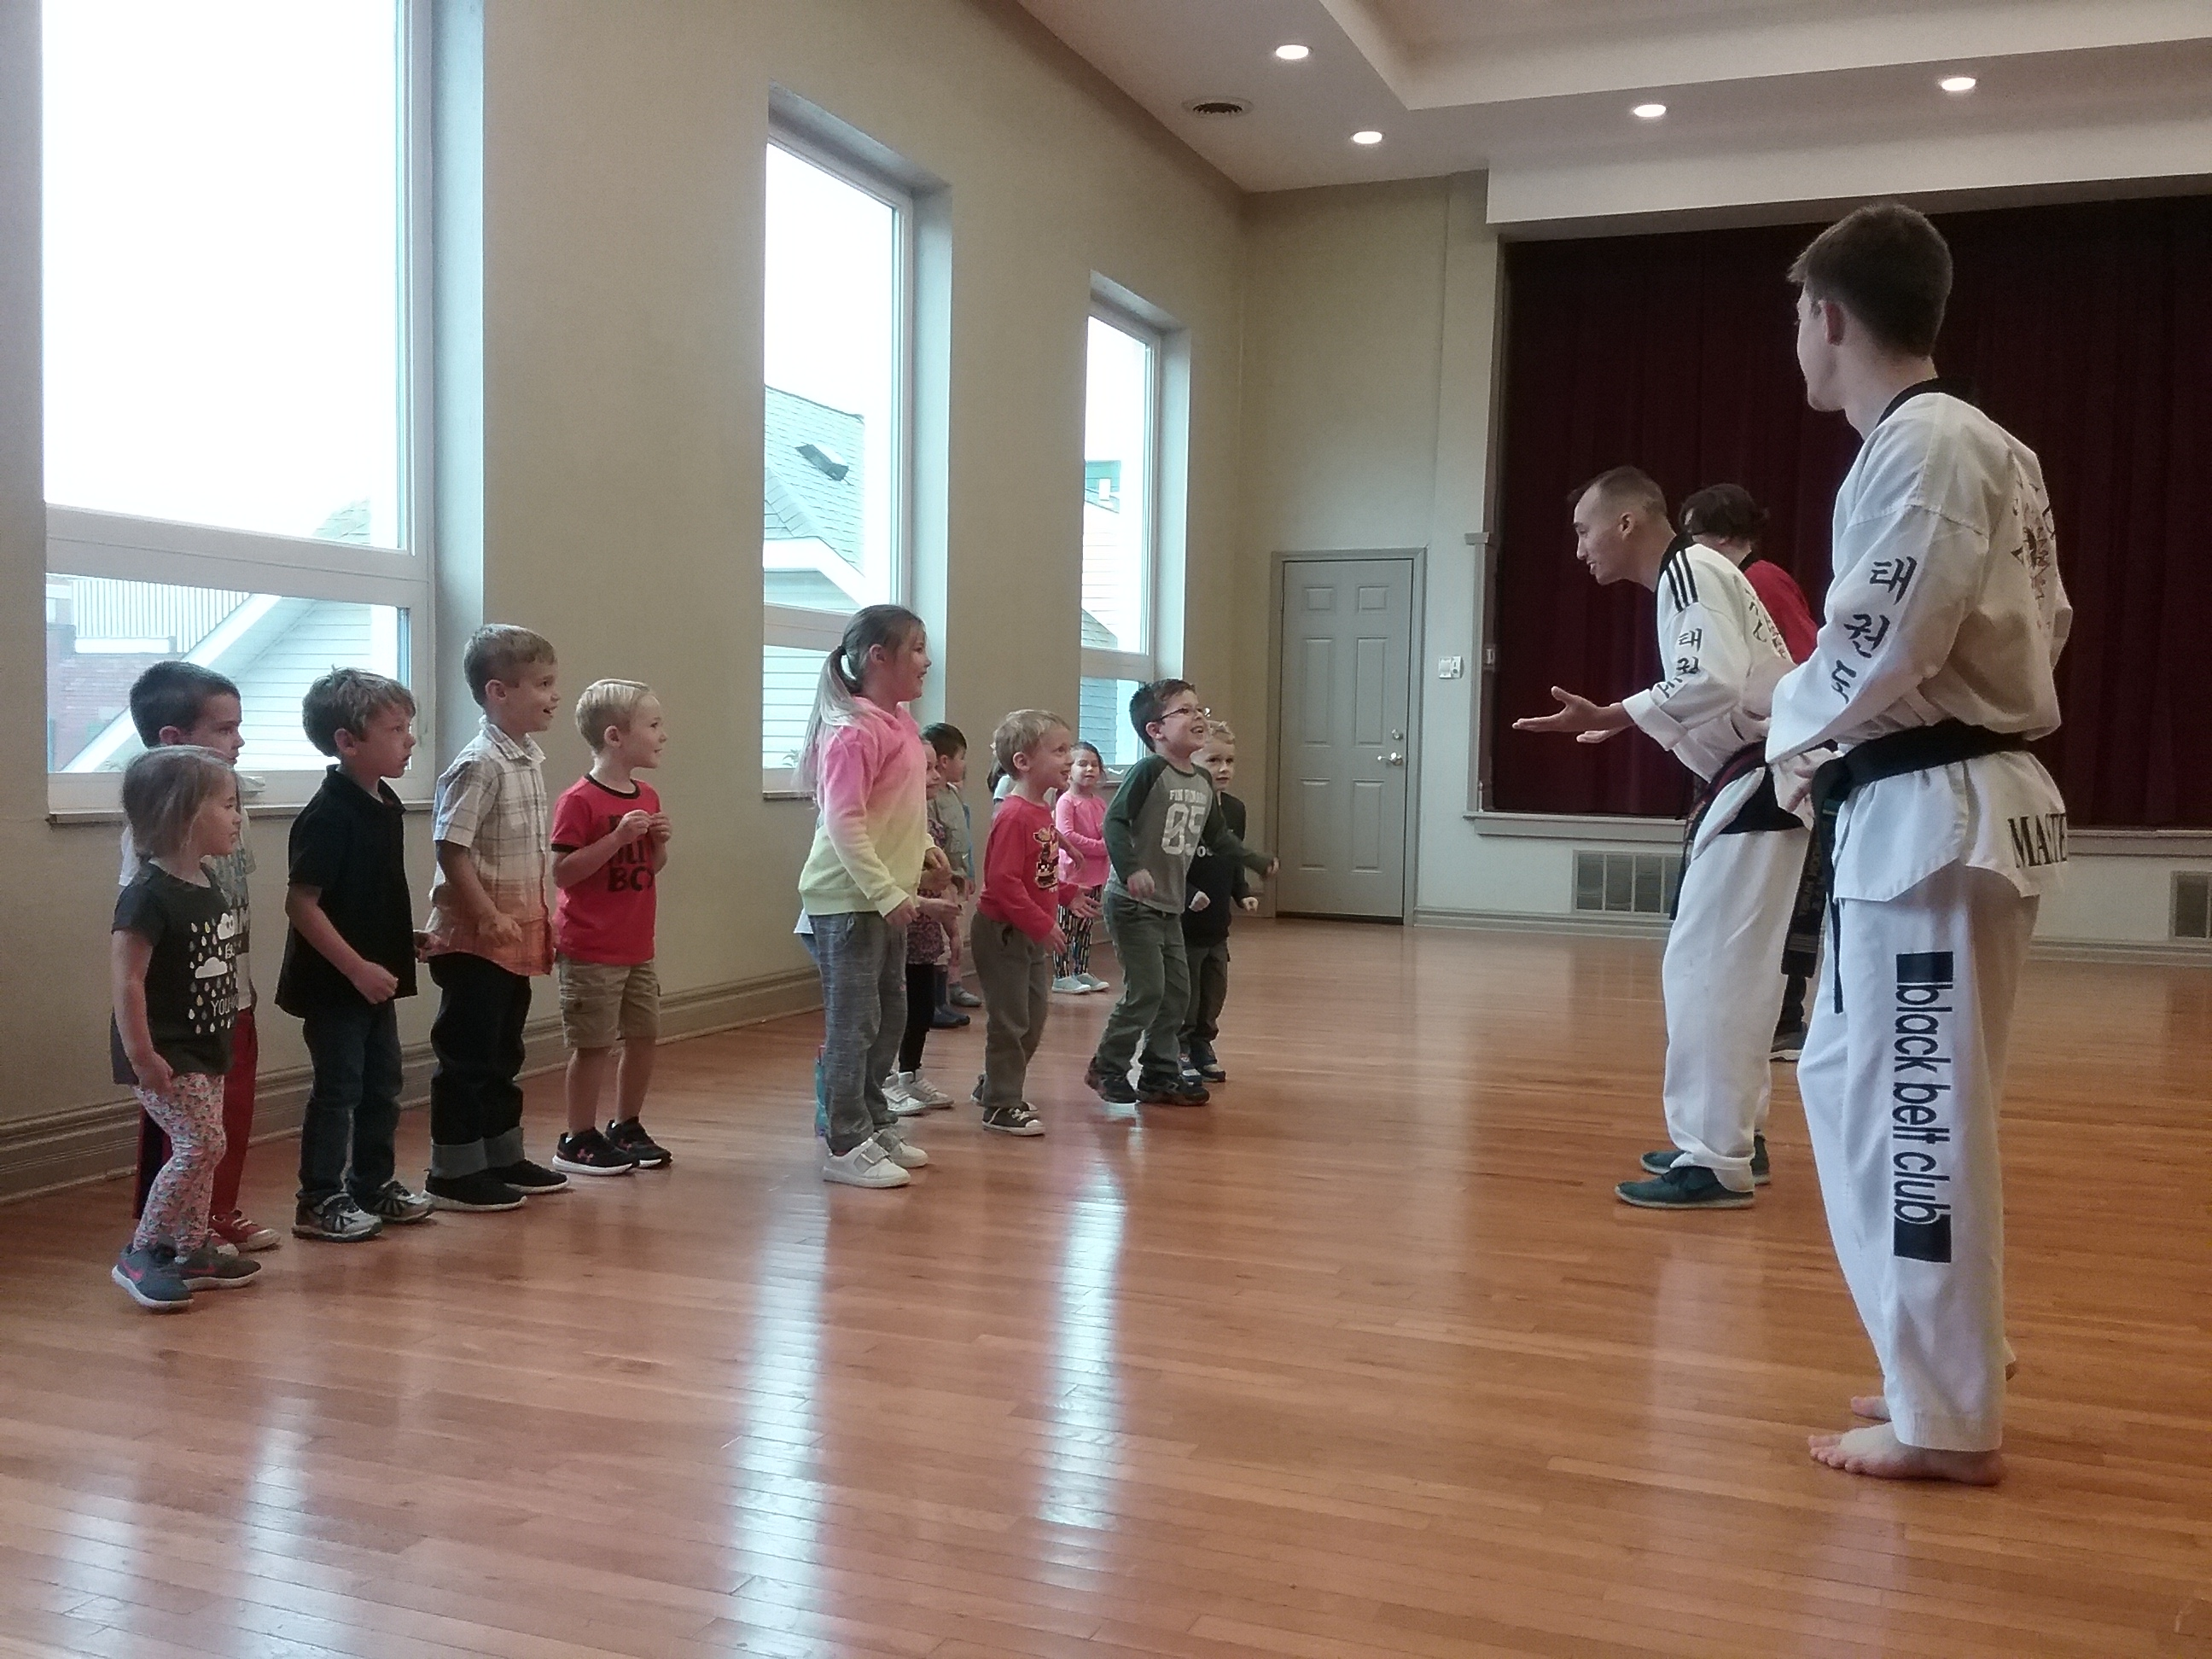 A peek into Tae Kwon Do | Session 3 - Absorbent Minds Montessori School